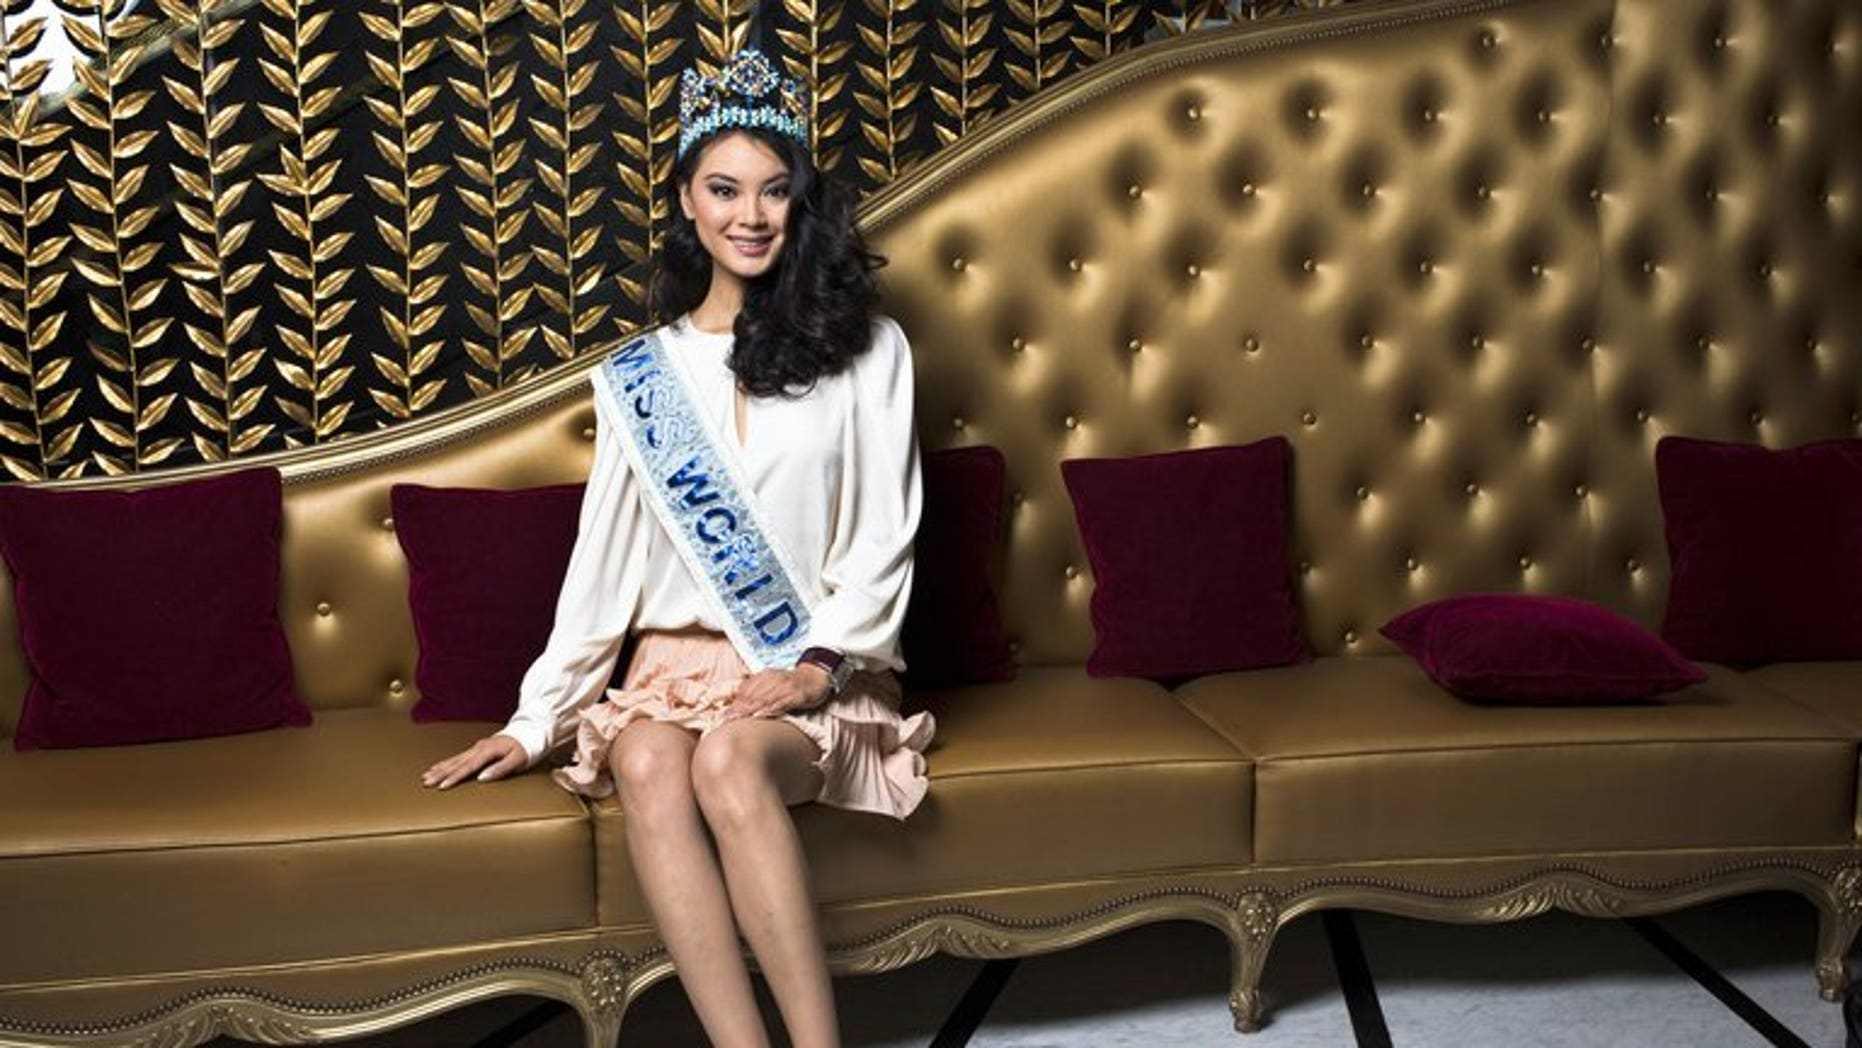 Chinese Miss World 2012 Wenxia Yu poses on September 26, 2012 in Paris. Indonesia's top Islamic authority lashed out Friday at the country's decision to host the Miss World beauty pageant next month, saying that women exposing their bodies went against Muslim teaching.